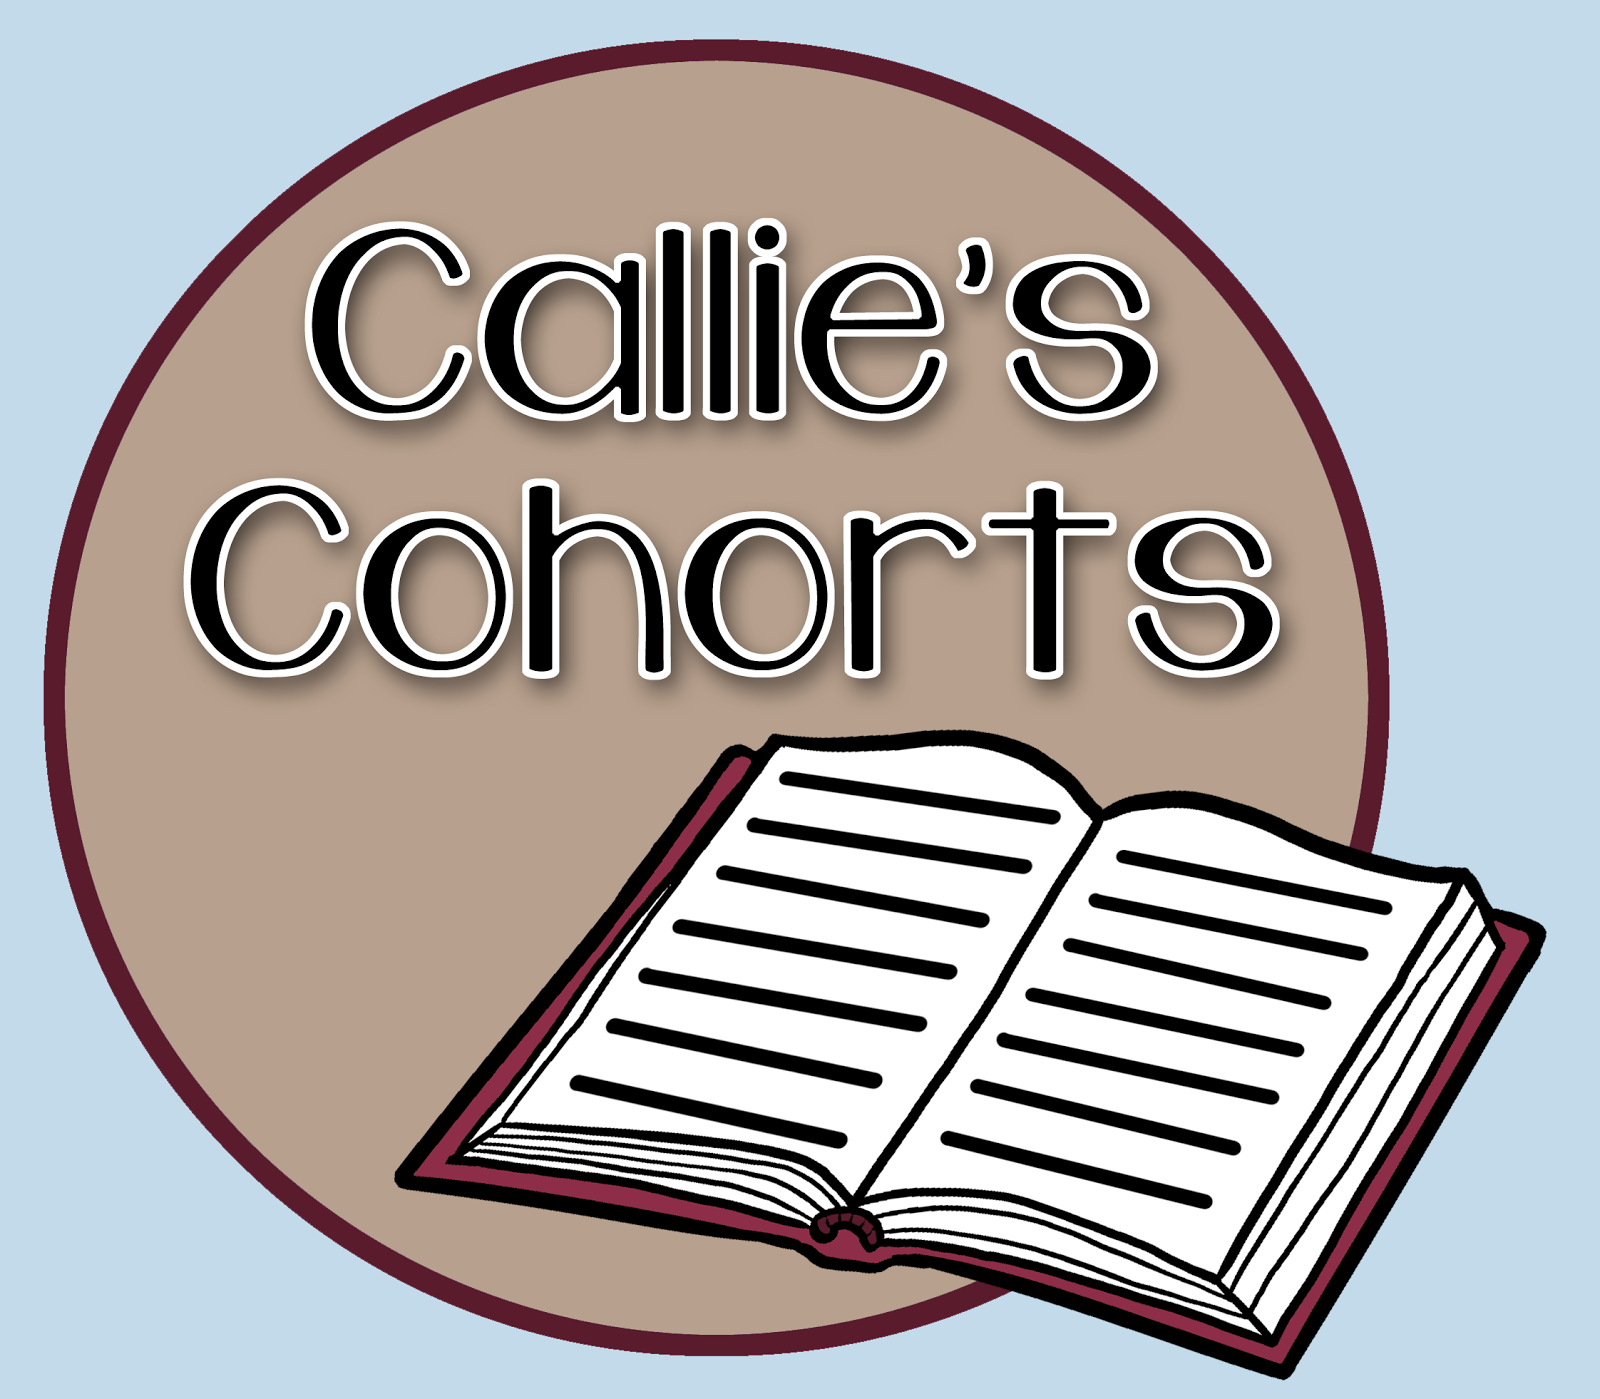 Callie Hutton's Street Team